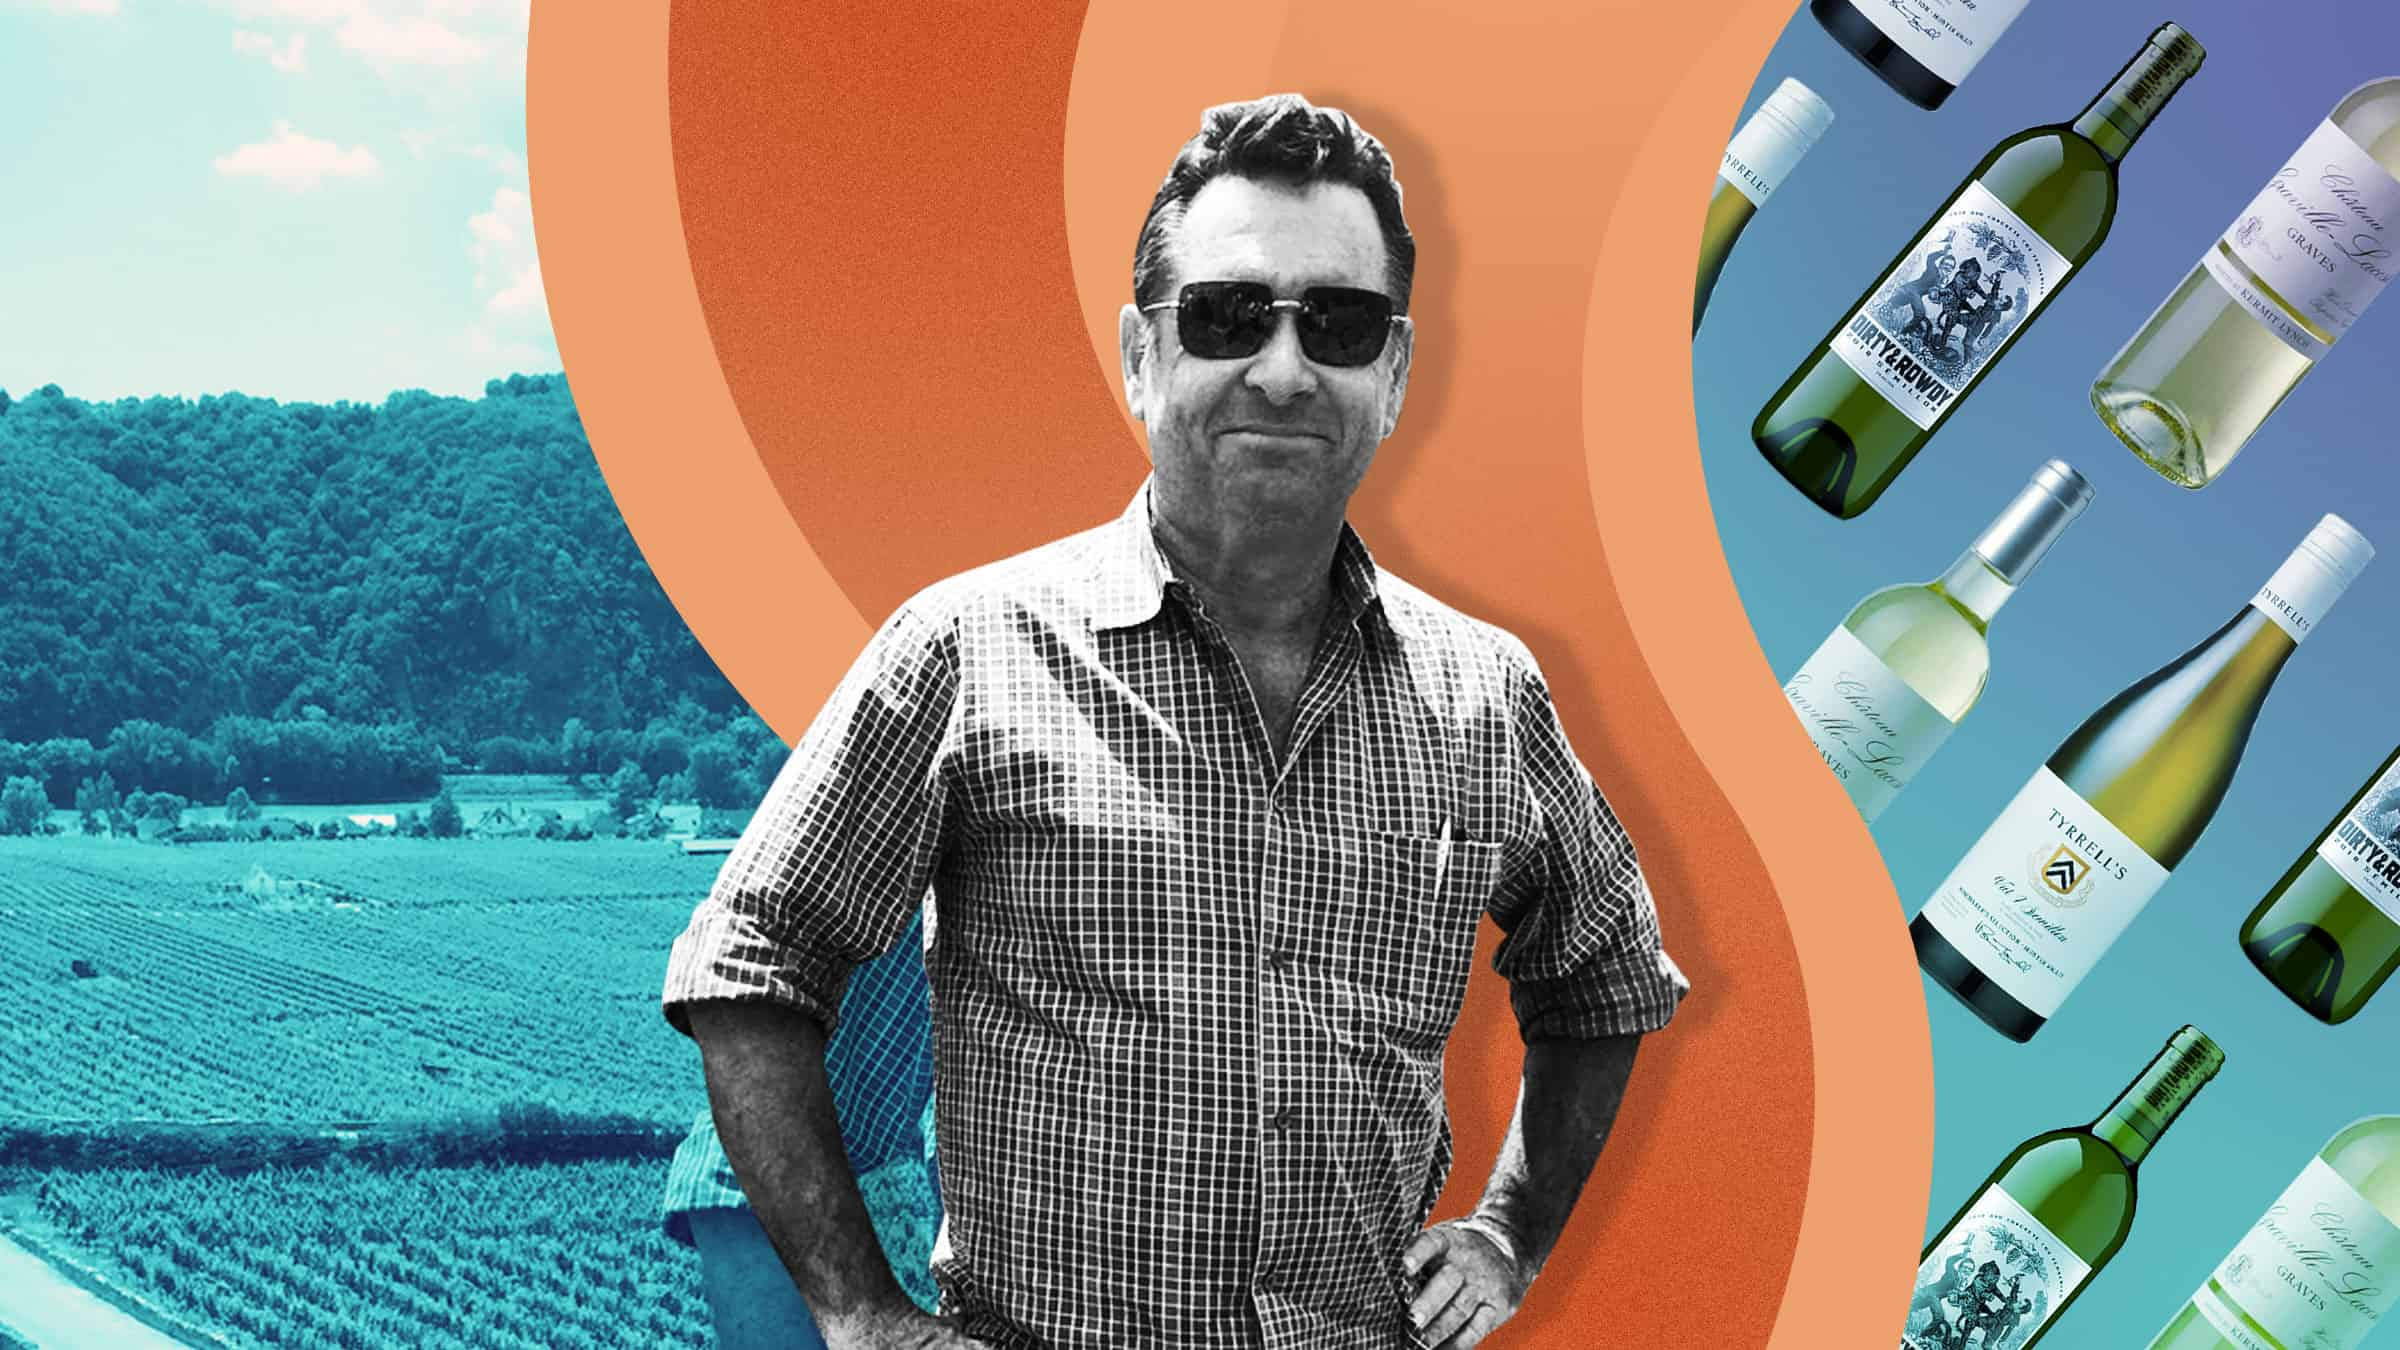 A photo illustration of wine retailer Dan Fredman, showing a vineyard and wine bottles in the background.